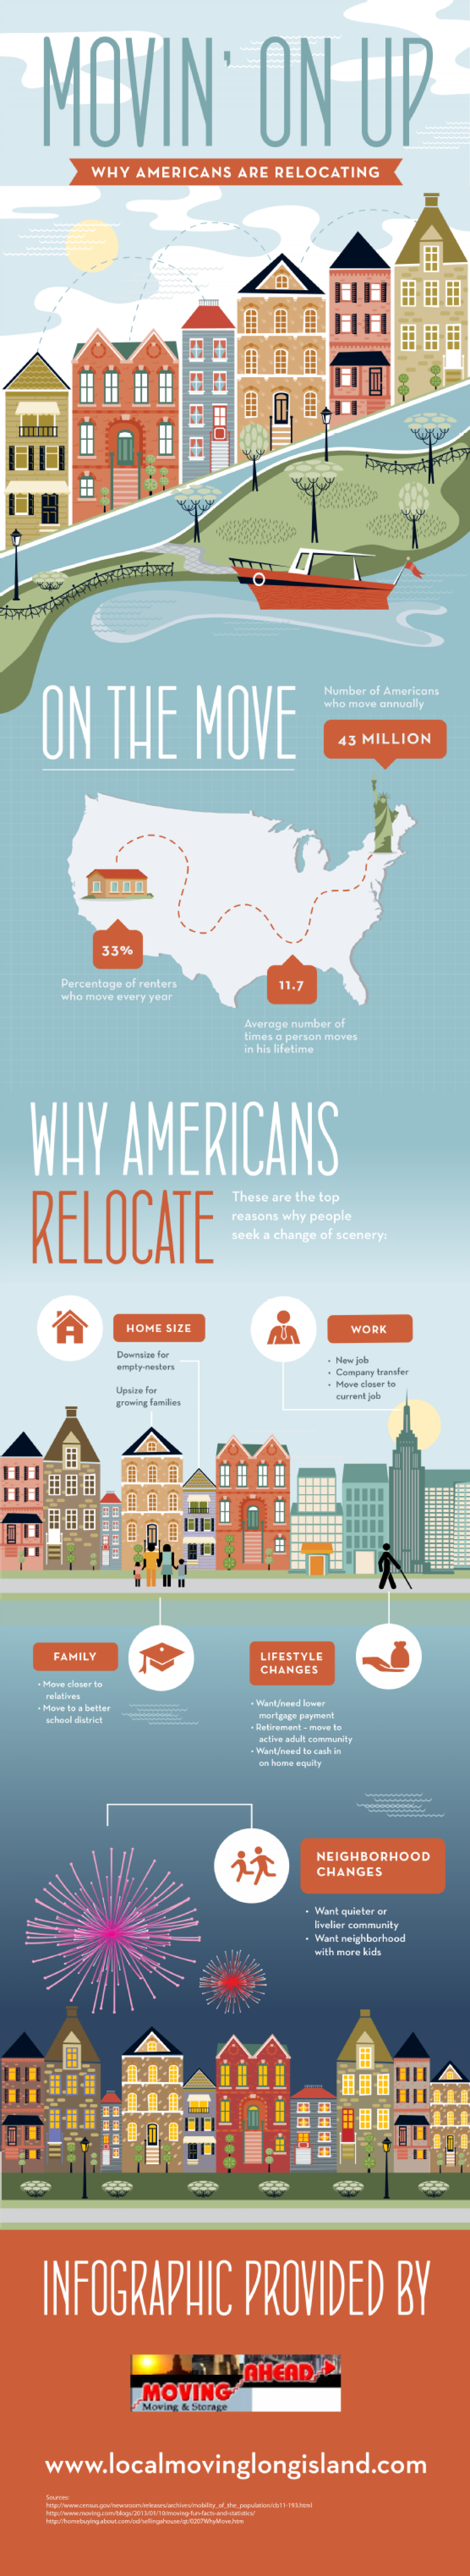 Movin' On Up: Why Americans Are Relocating Infographic